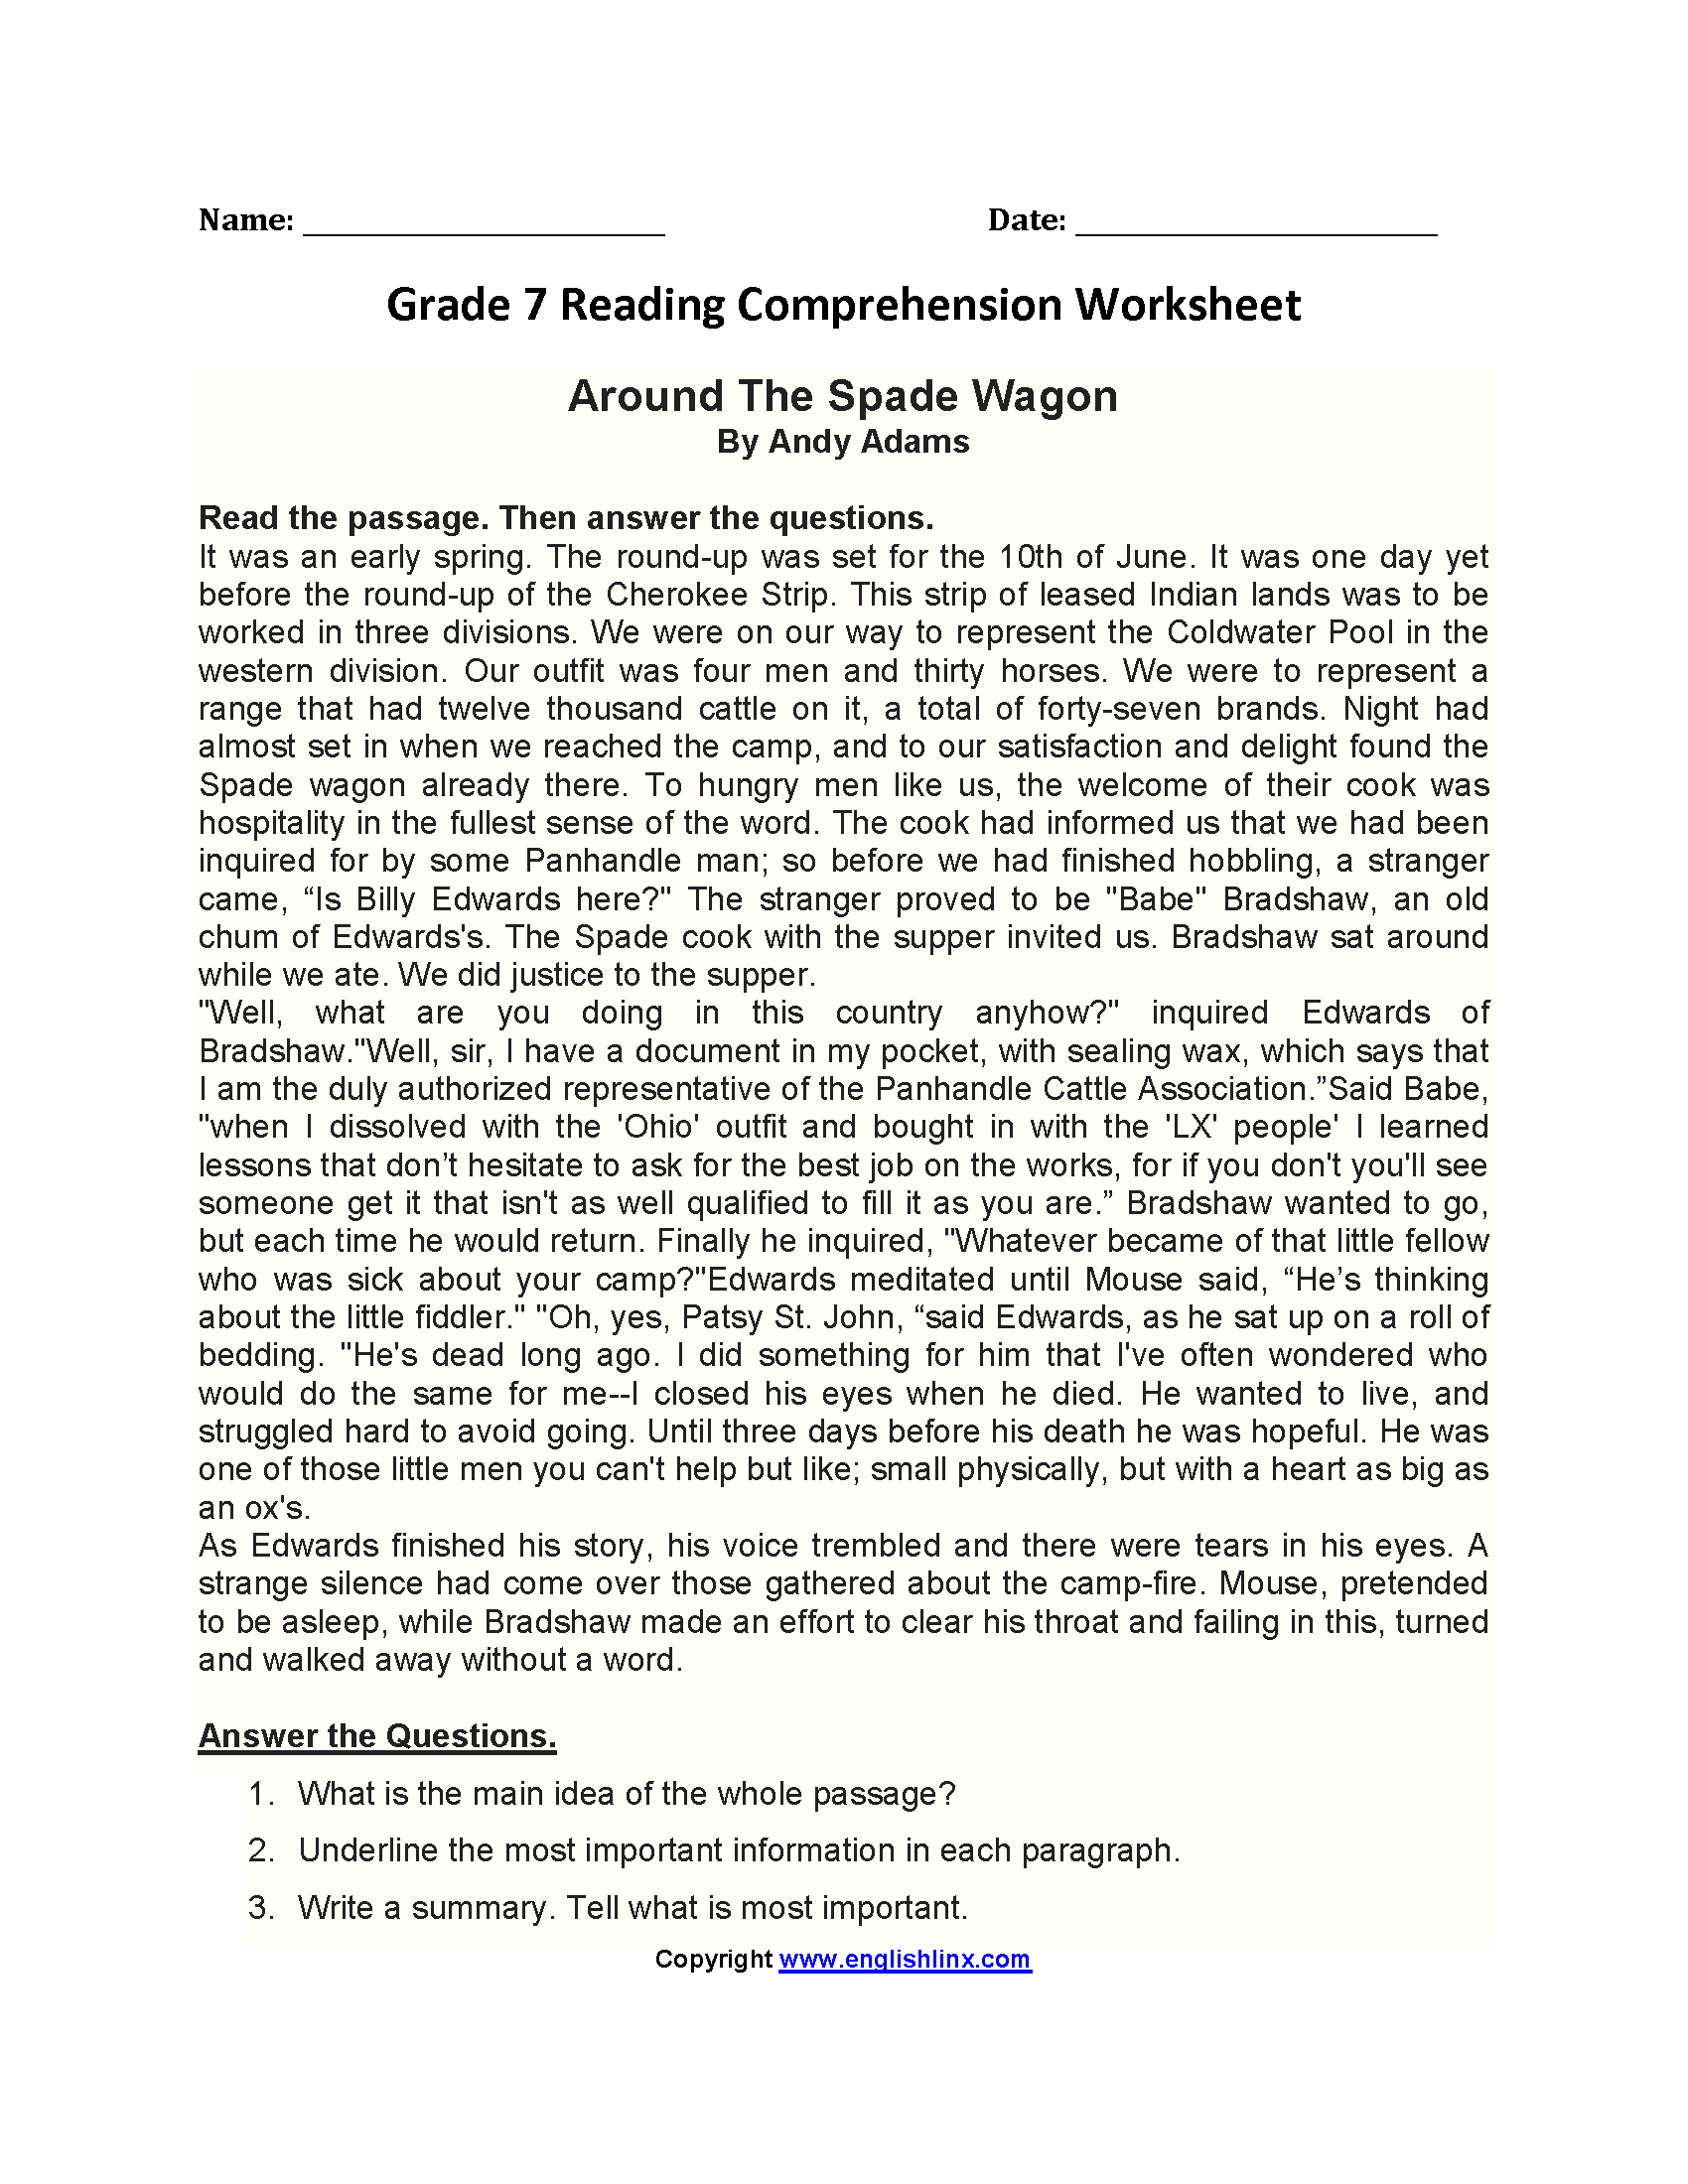 Around The Spade Wagon Seventh Grade Reading Worksheets